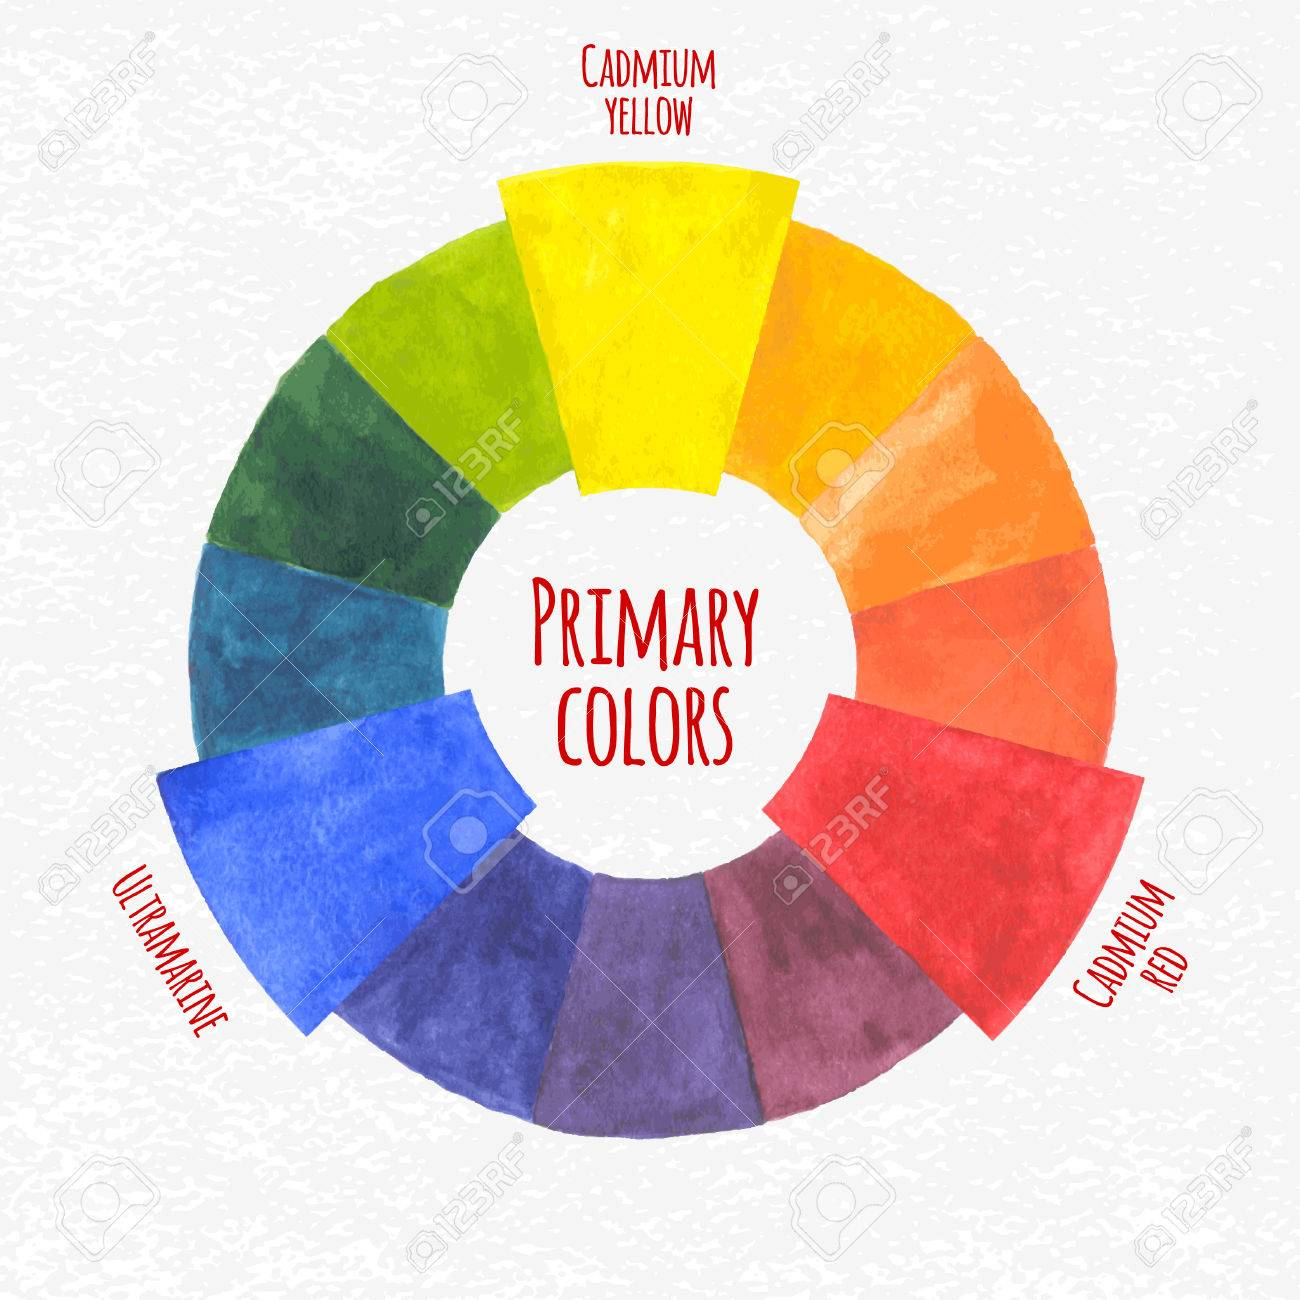 Handmade Color Wheel. Primary Colors Chart - Vector Illustration ...